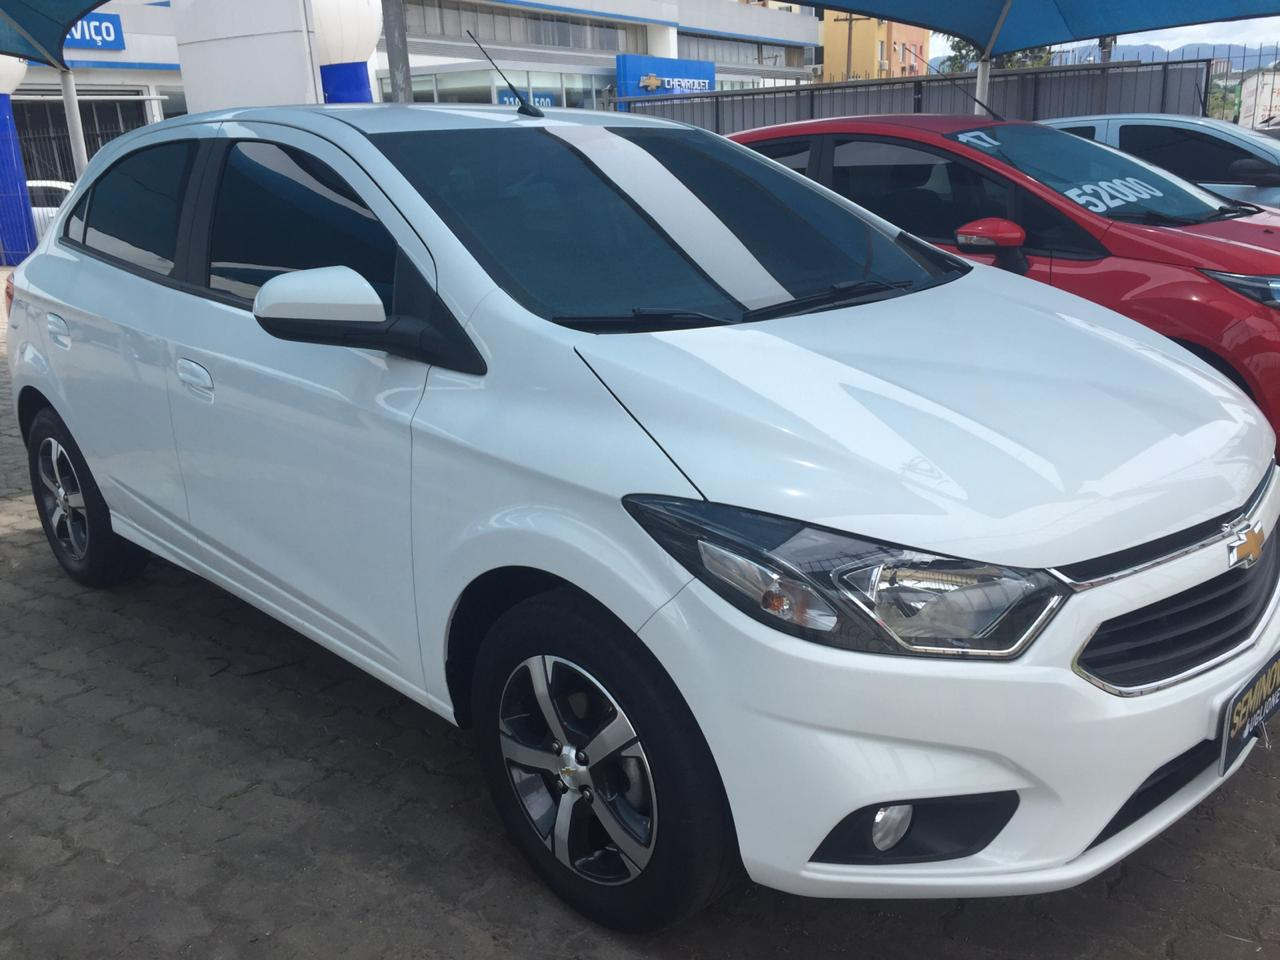 CHEVROLET ONIX HATCH LTZ 1.4 2018